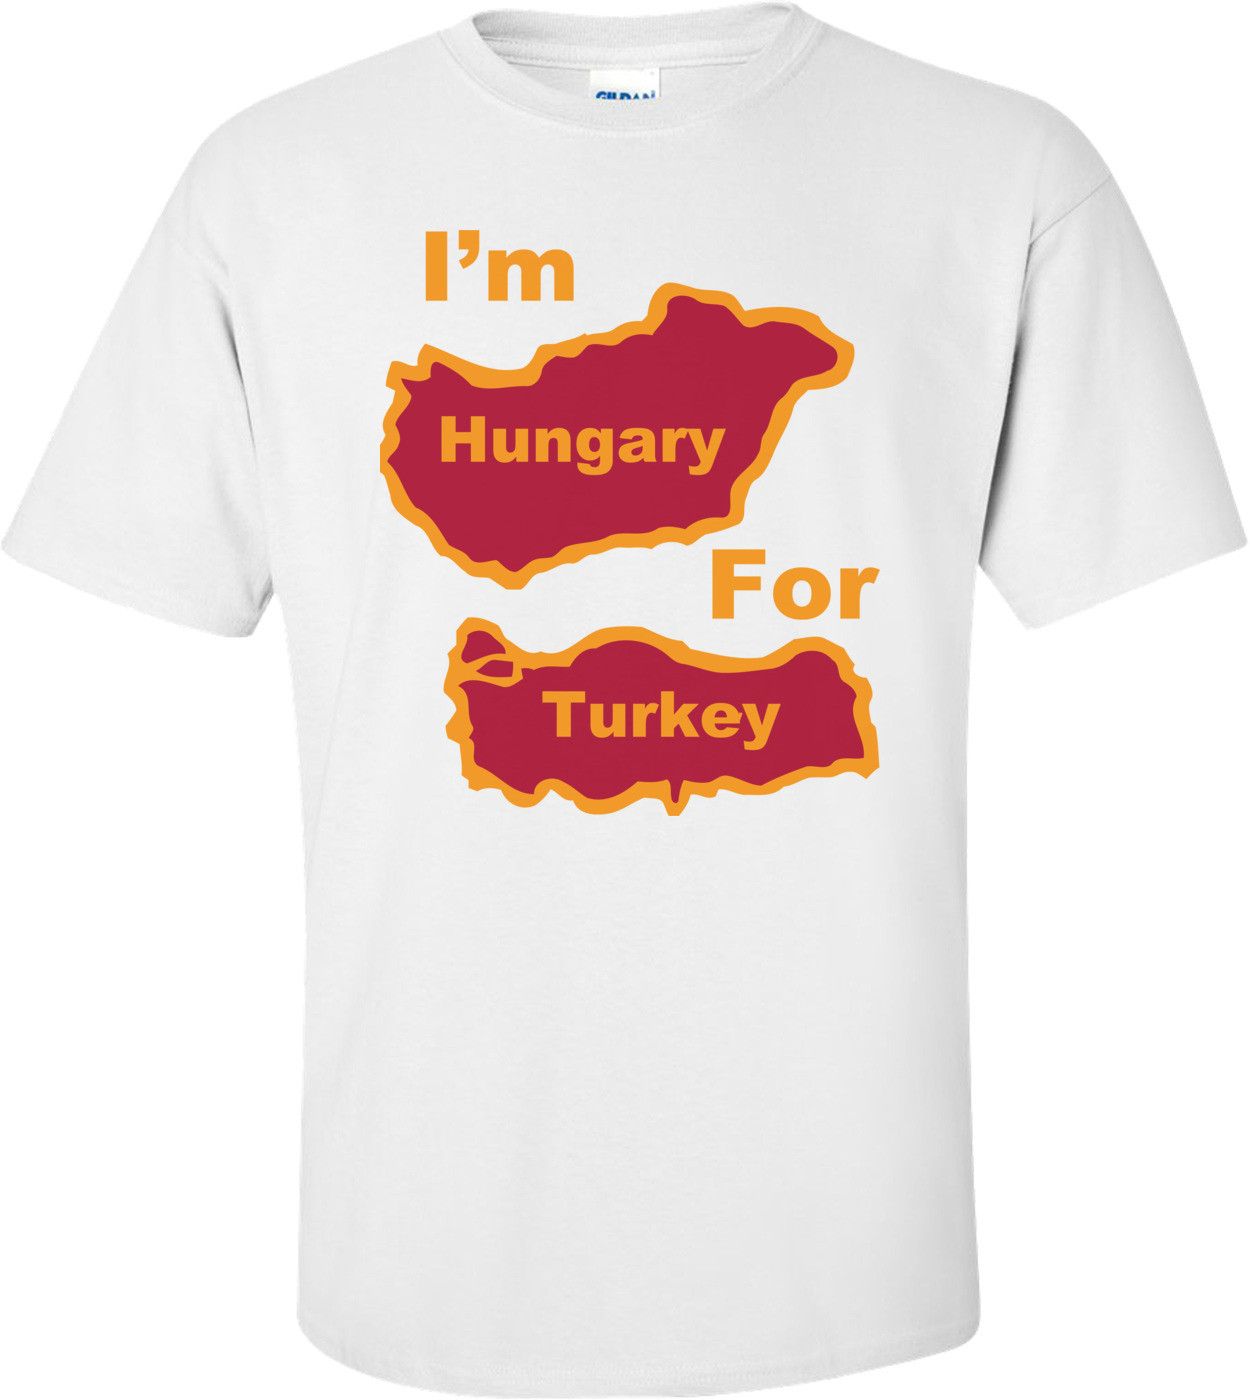 I'm Hungary For Turkey T-shirt